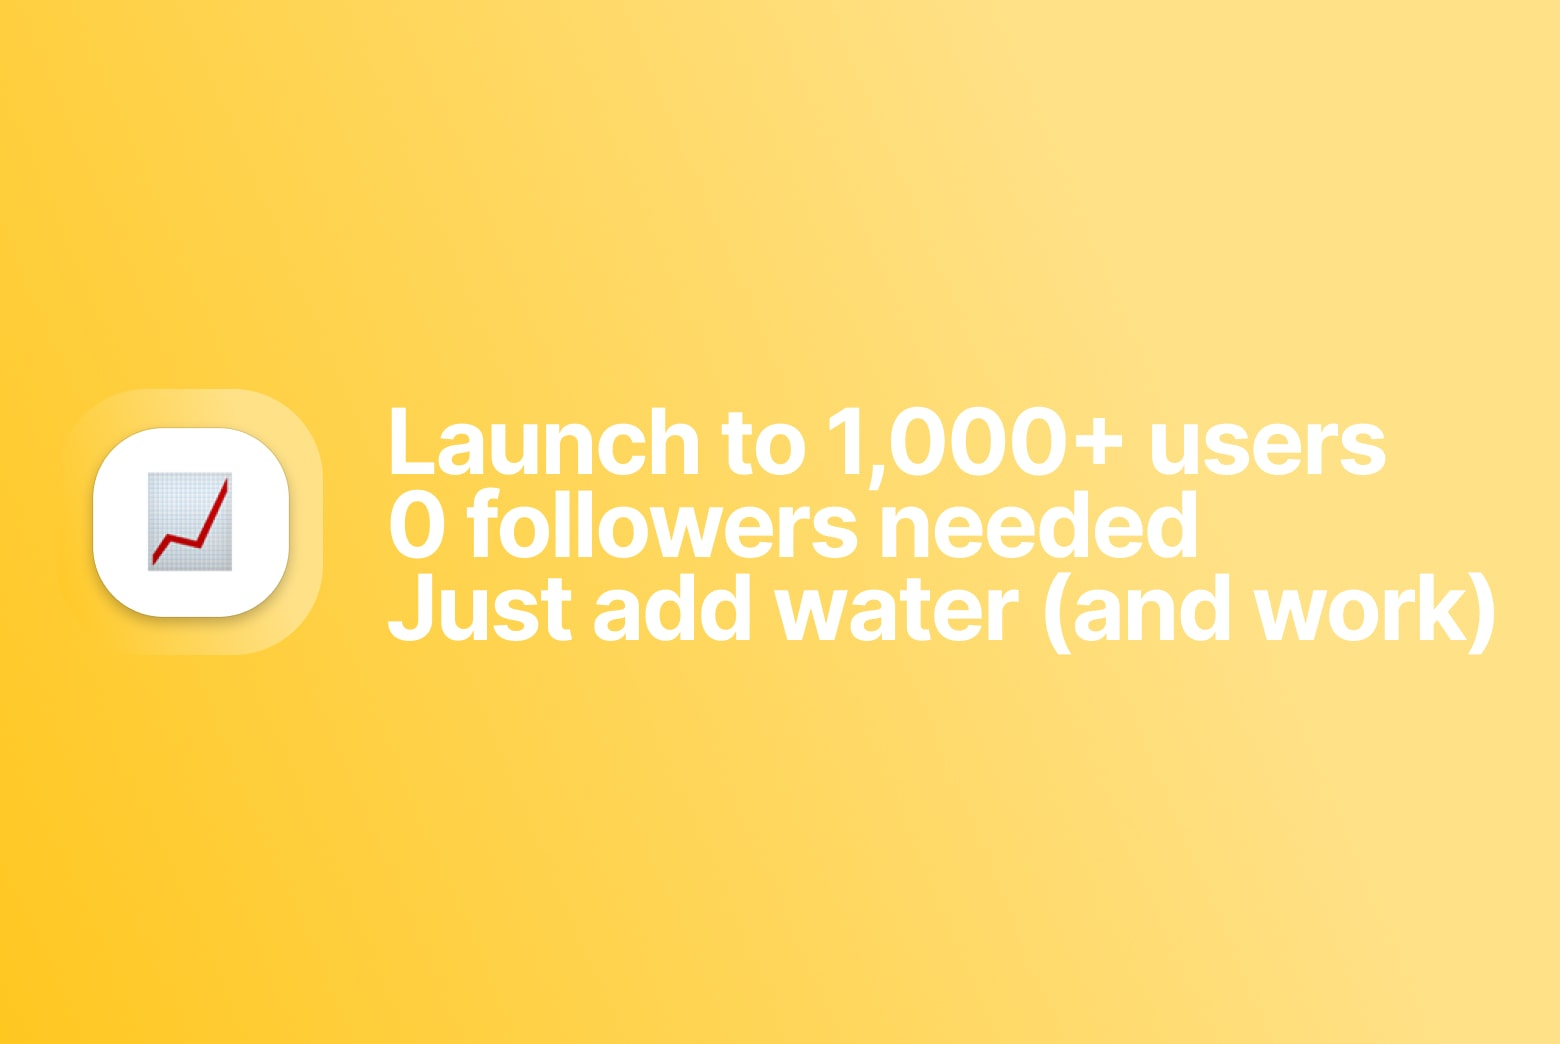 How to launch to 3,000 users when starting from 0